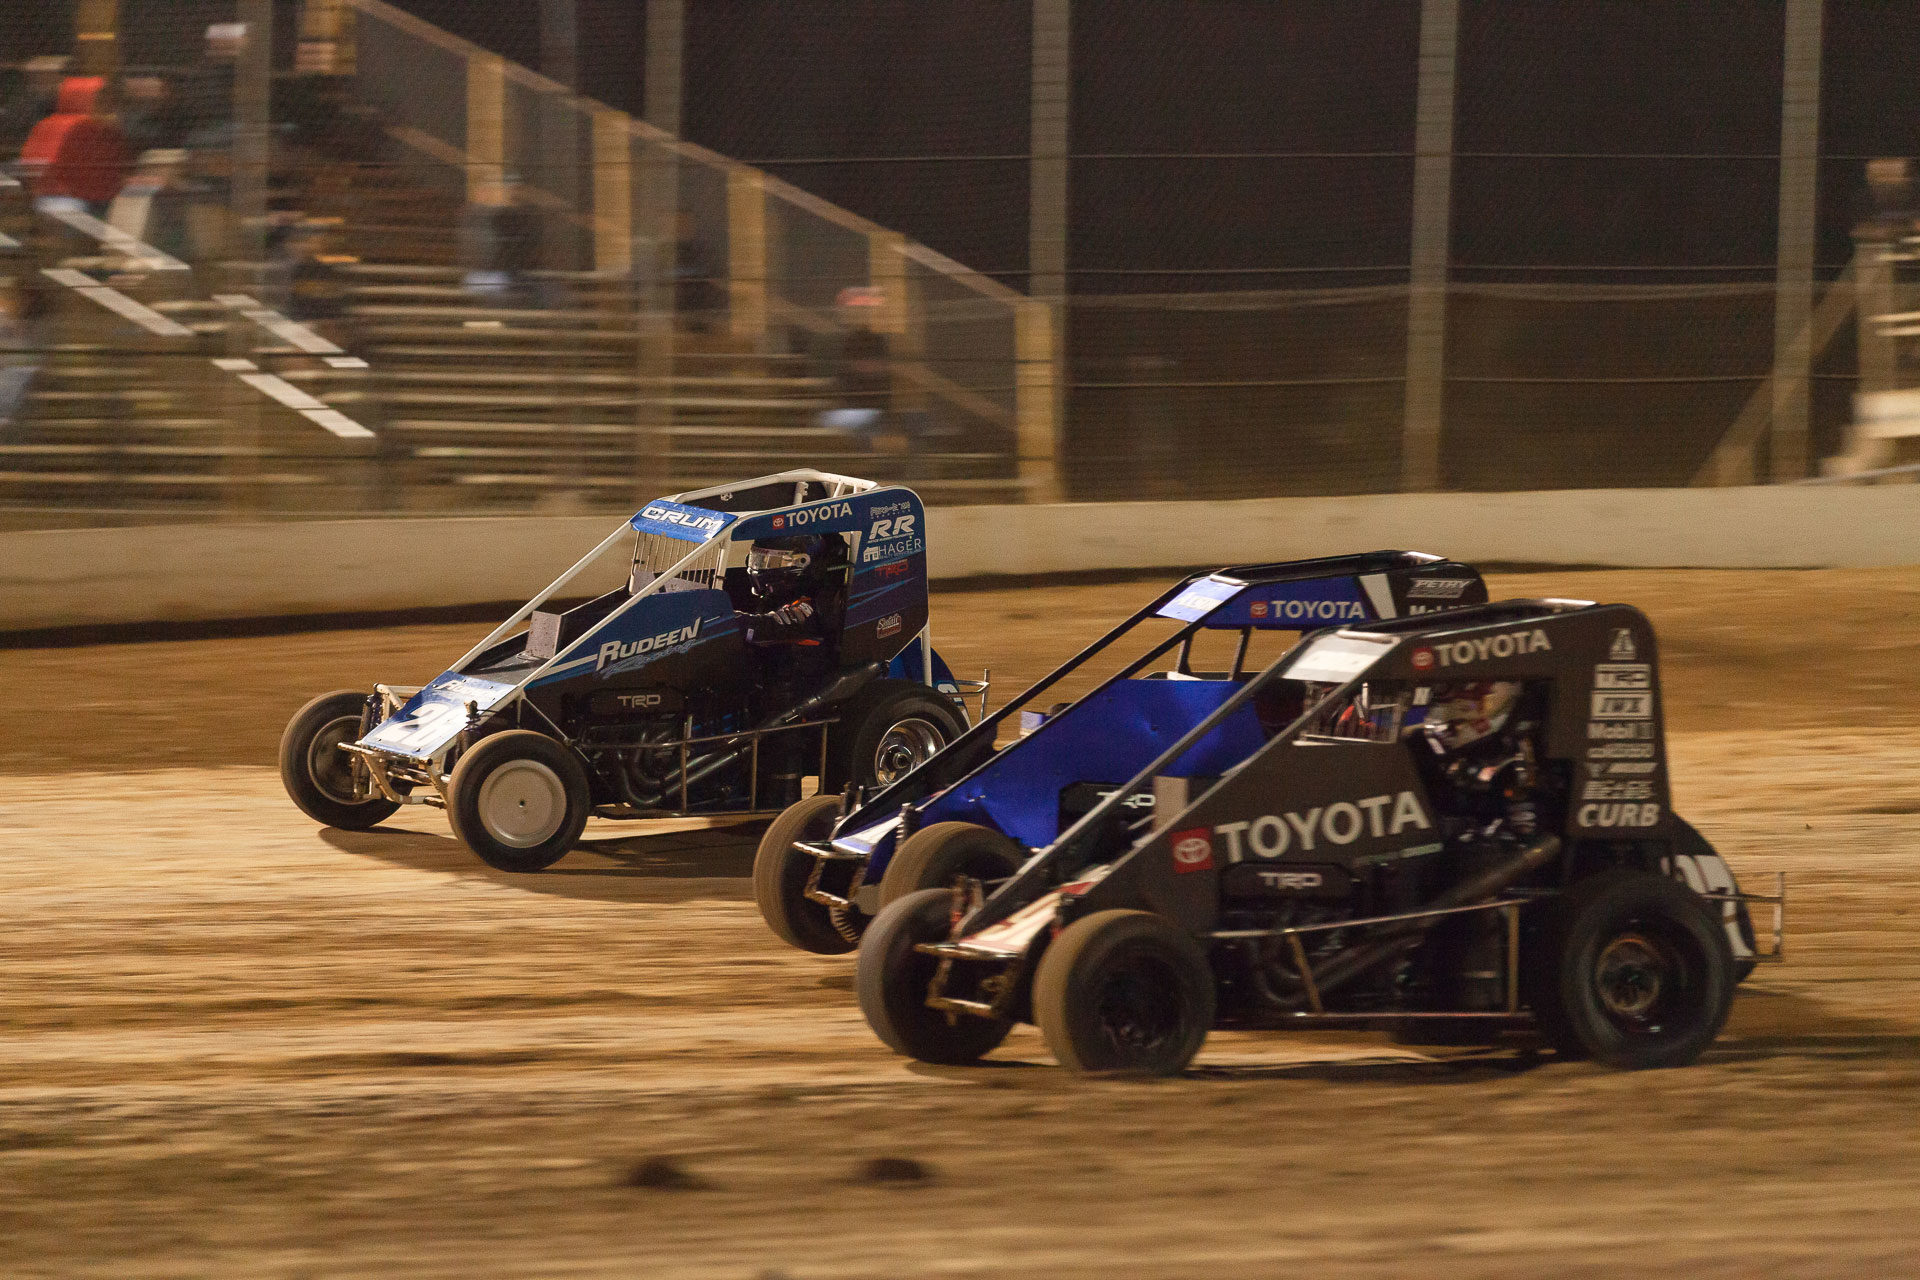 Brenham Crouch in the 97 gets speed out of turn 4 to overtake Chance Crum and no. 15 Emerson Axsom. Brenham Crouch would go on to win the A Feature at the 2021 Lake Ozark Speedway Memorial Weekend Sprint and Midget Nationals. ( Jeffrey Turford / TDP )